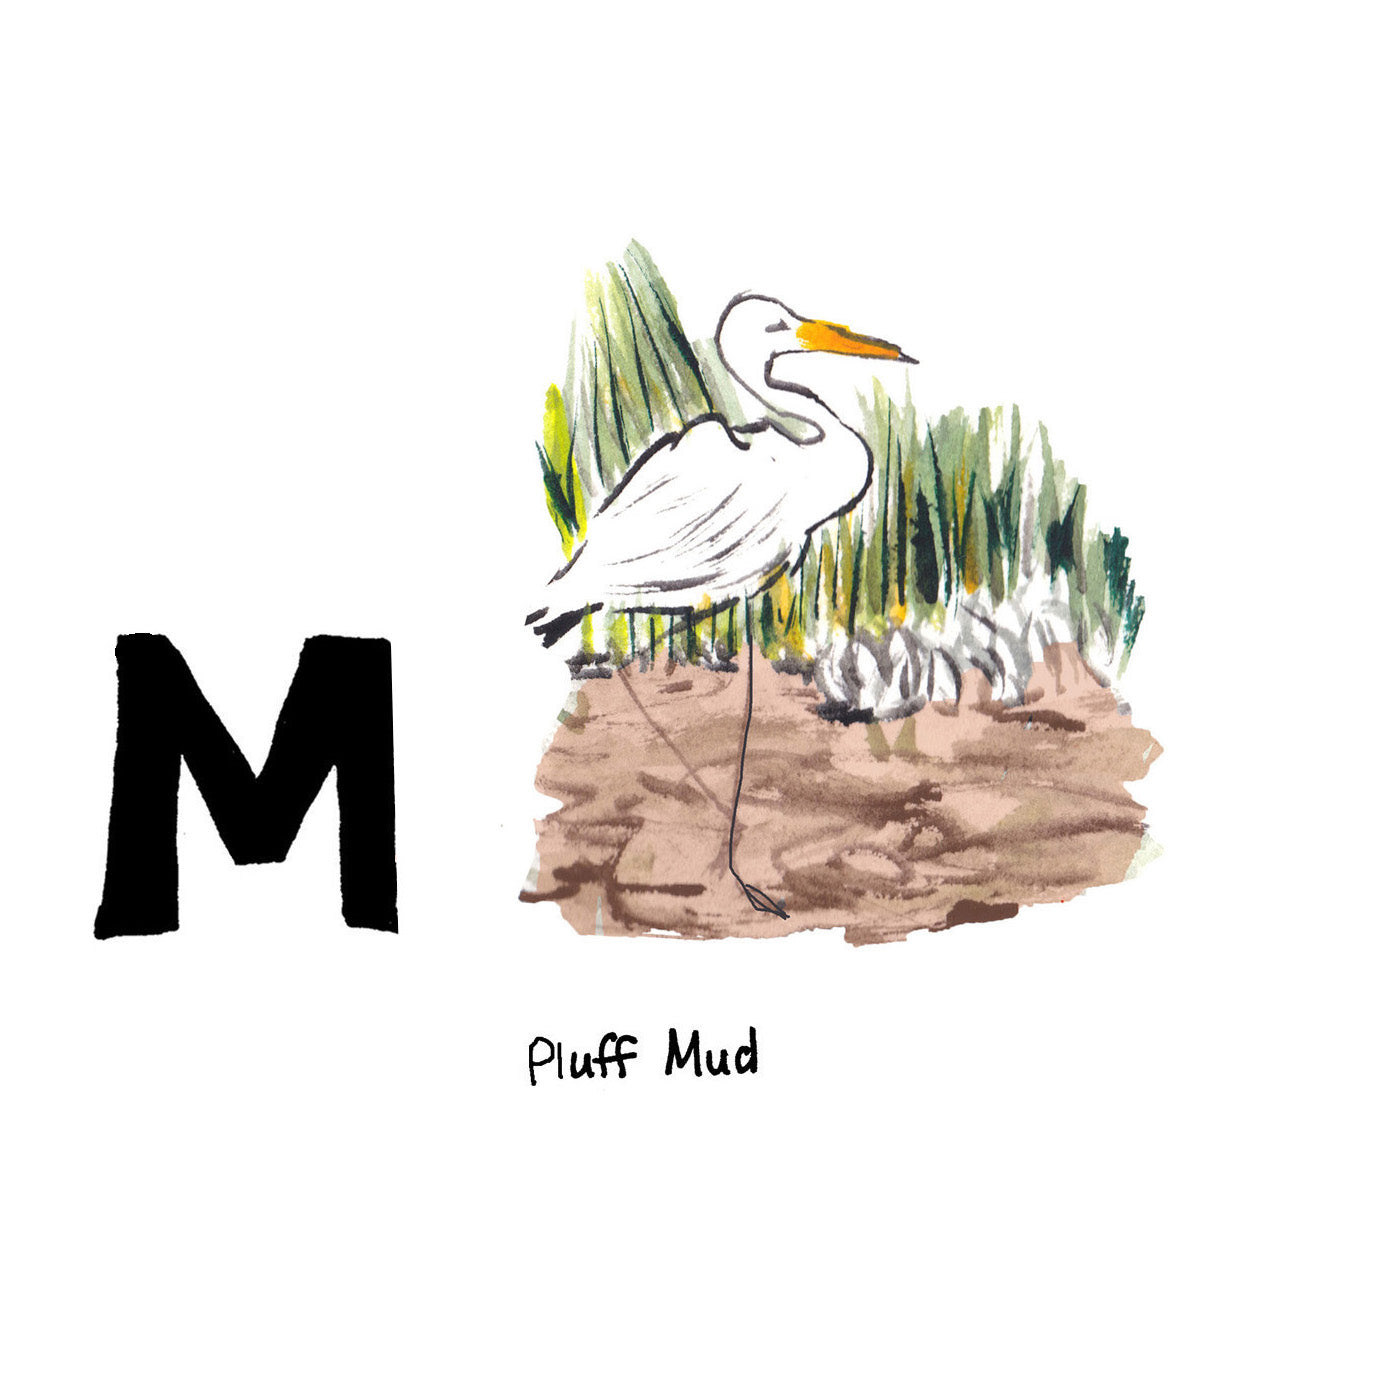 M is for Pluff Mud. Pluff mud is the home for some of our delicious seafood such as crabs, oysters and shrimp, and many rich local culinary delights are named after it.